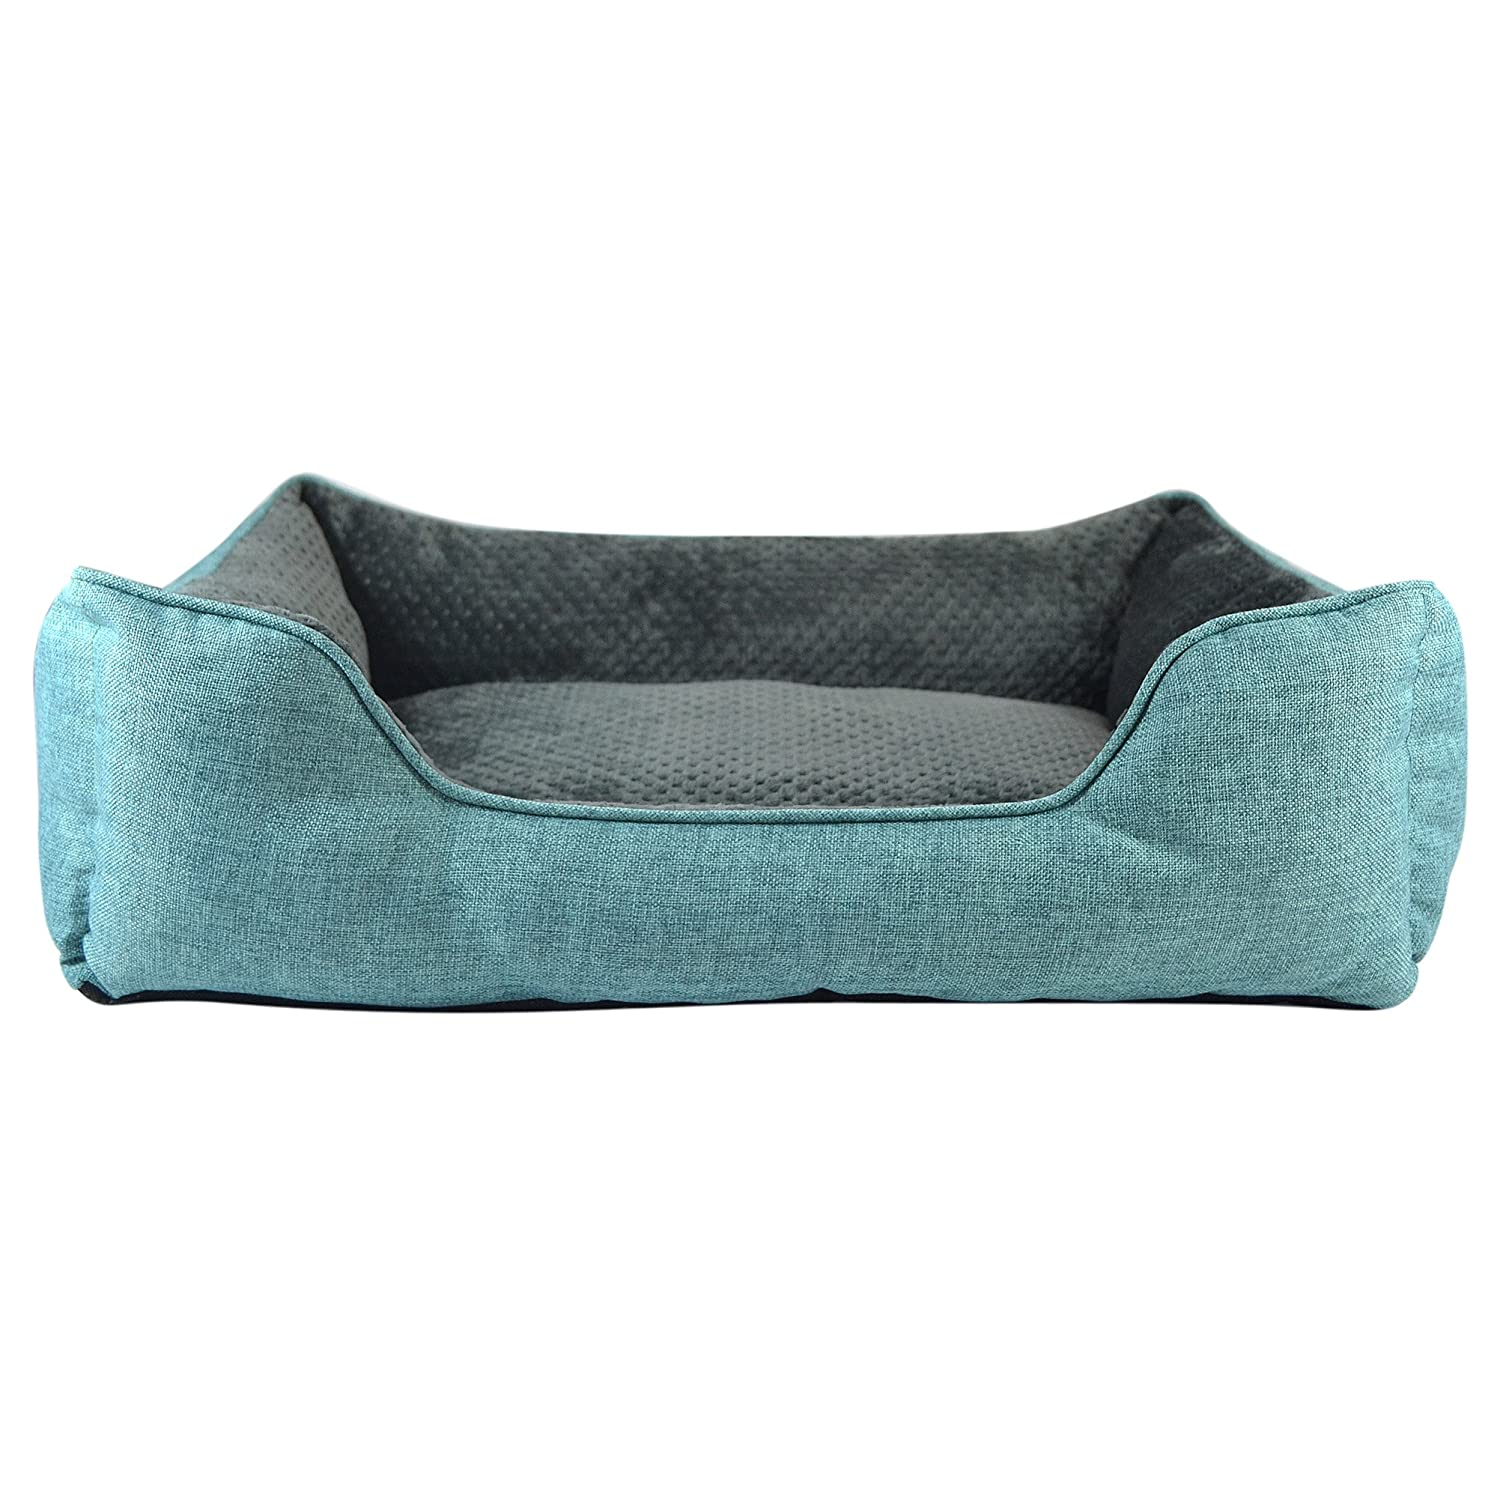 Premium Linen Pet Bed By Cozy Cuddlerz – Ultra Soft Plush Pillow Interior – Luxurious Style Elegant Design-Suitable For Cats Dogs-2 Available Sizes Colors Light Gray Blue